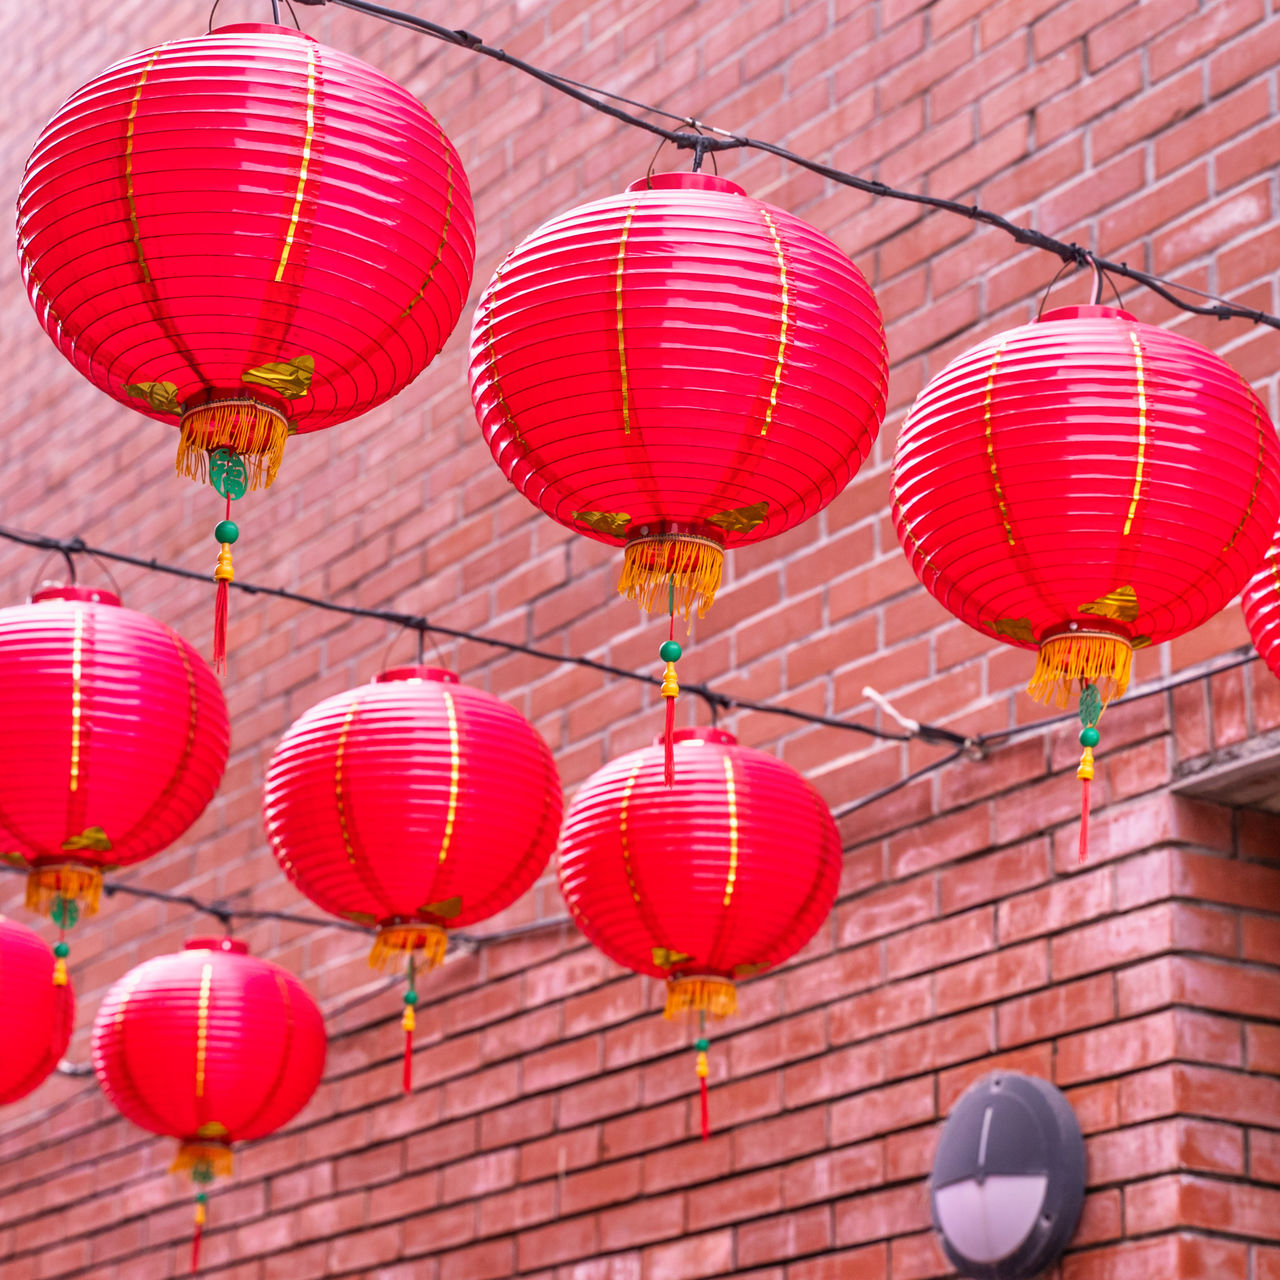 LOW ANGLE VIEW OF LANTERNS HANGING BY CEILING